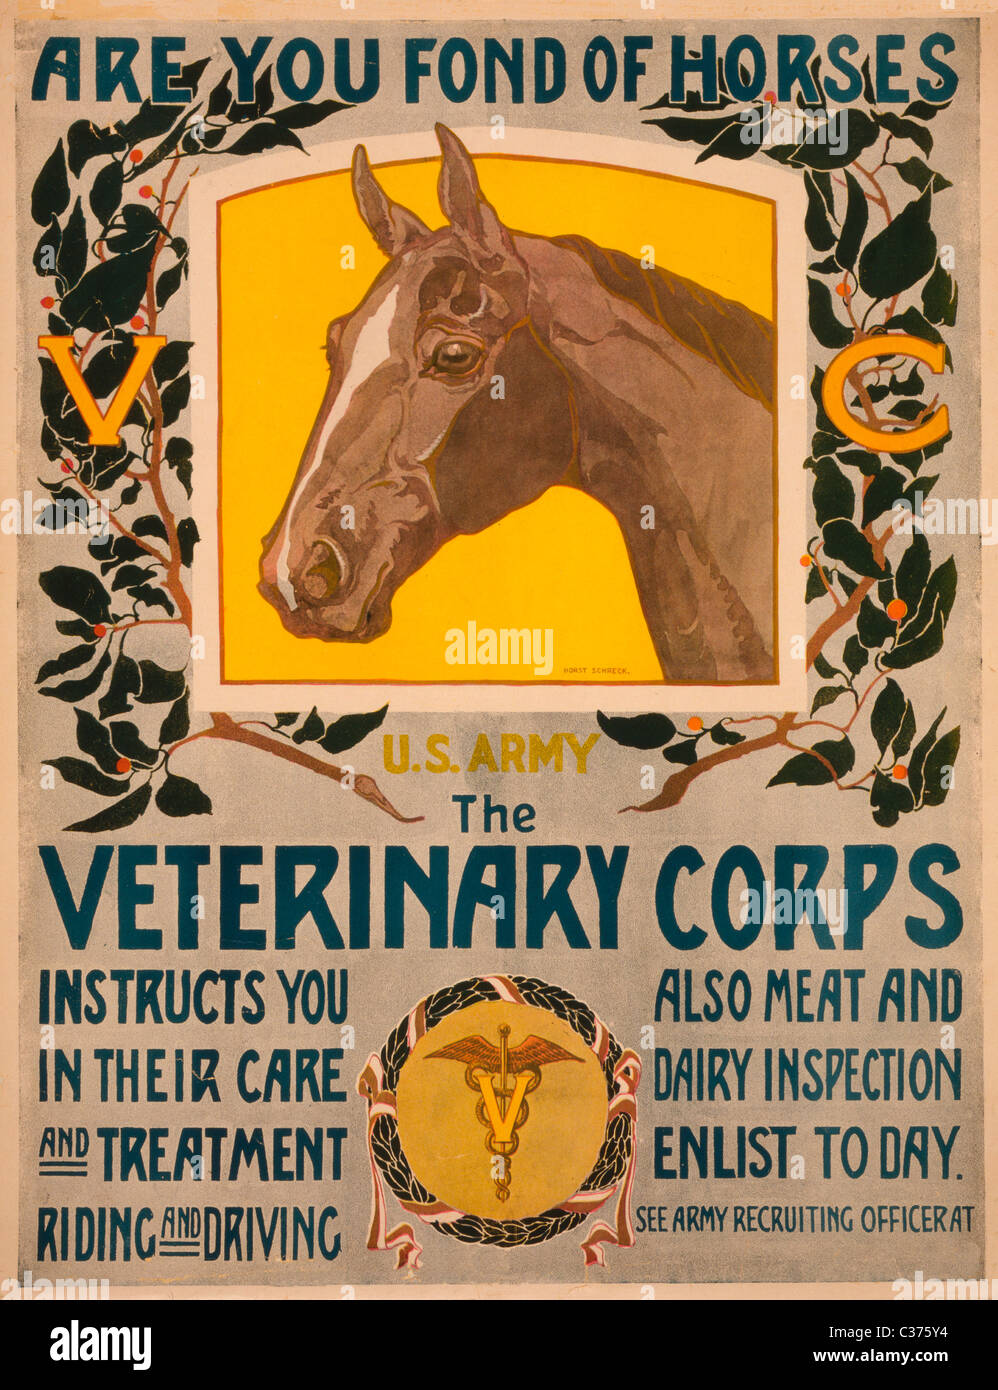 Are you fond of horses - U.S. Army - The Veterinary Corps Recruiting Poster 1919 - Stock Image